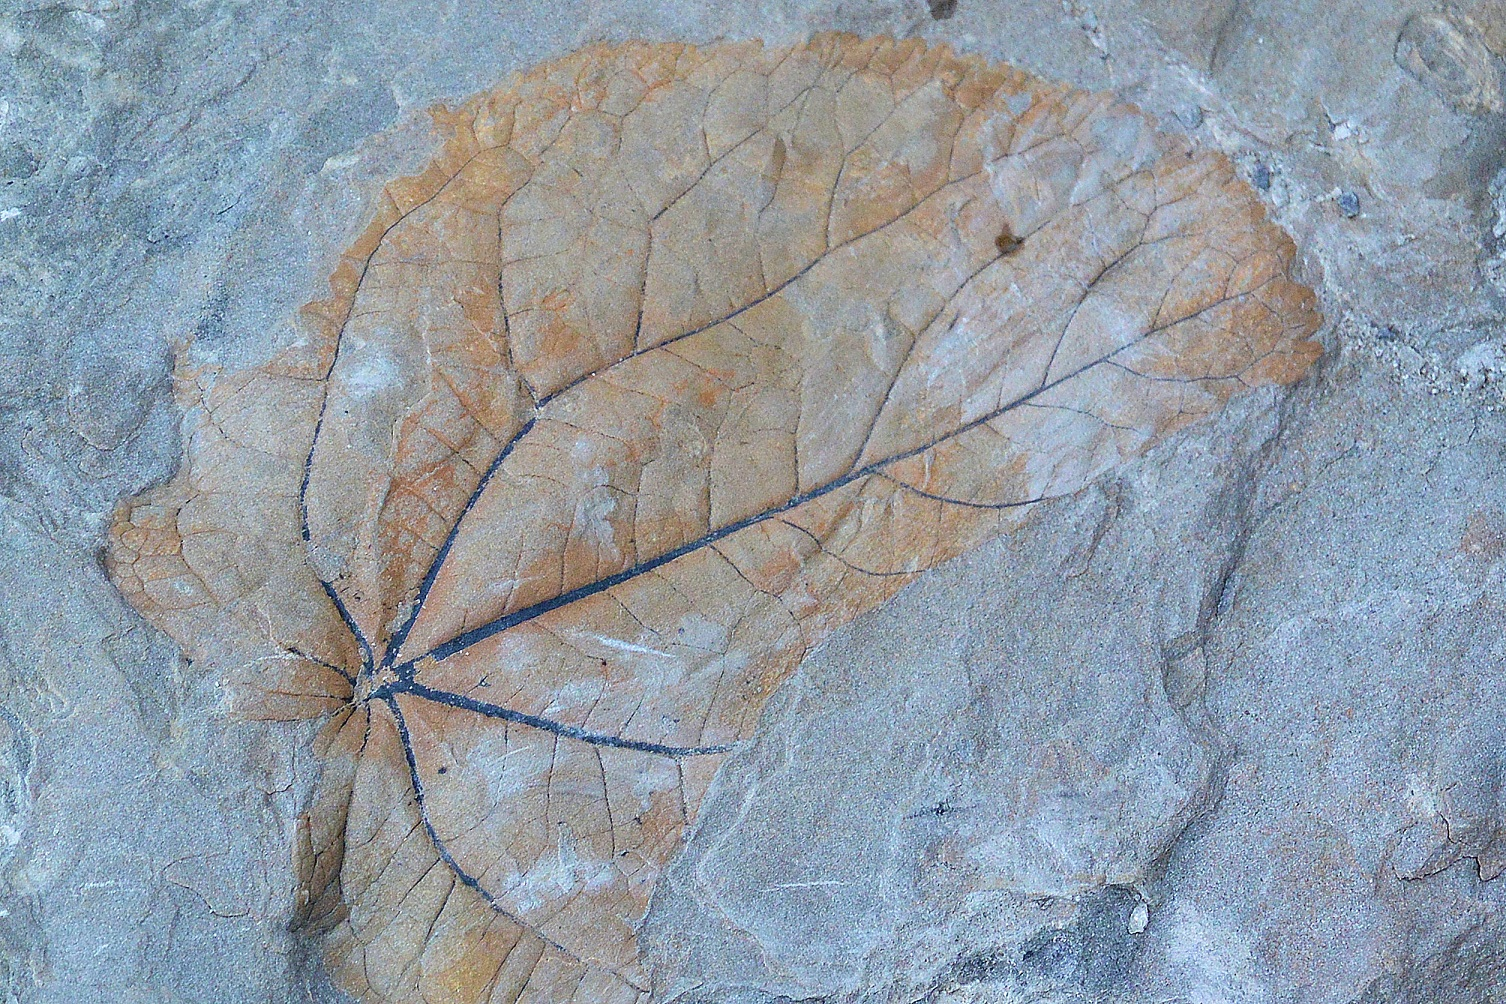 A perfect imprint of a leaf, 40 to 50 million years old, is only one of many remarkable fossils found in the moraines of Longyear glacier on the island of Spitsbergen 1,300 km (800 mi) north of the Arctic Circle. The impression was chipped and damaged by a fossil hunter.